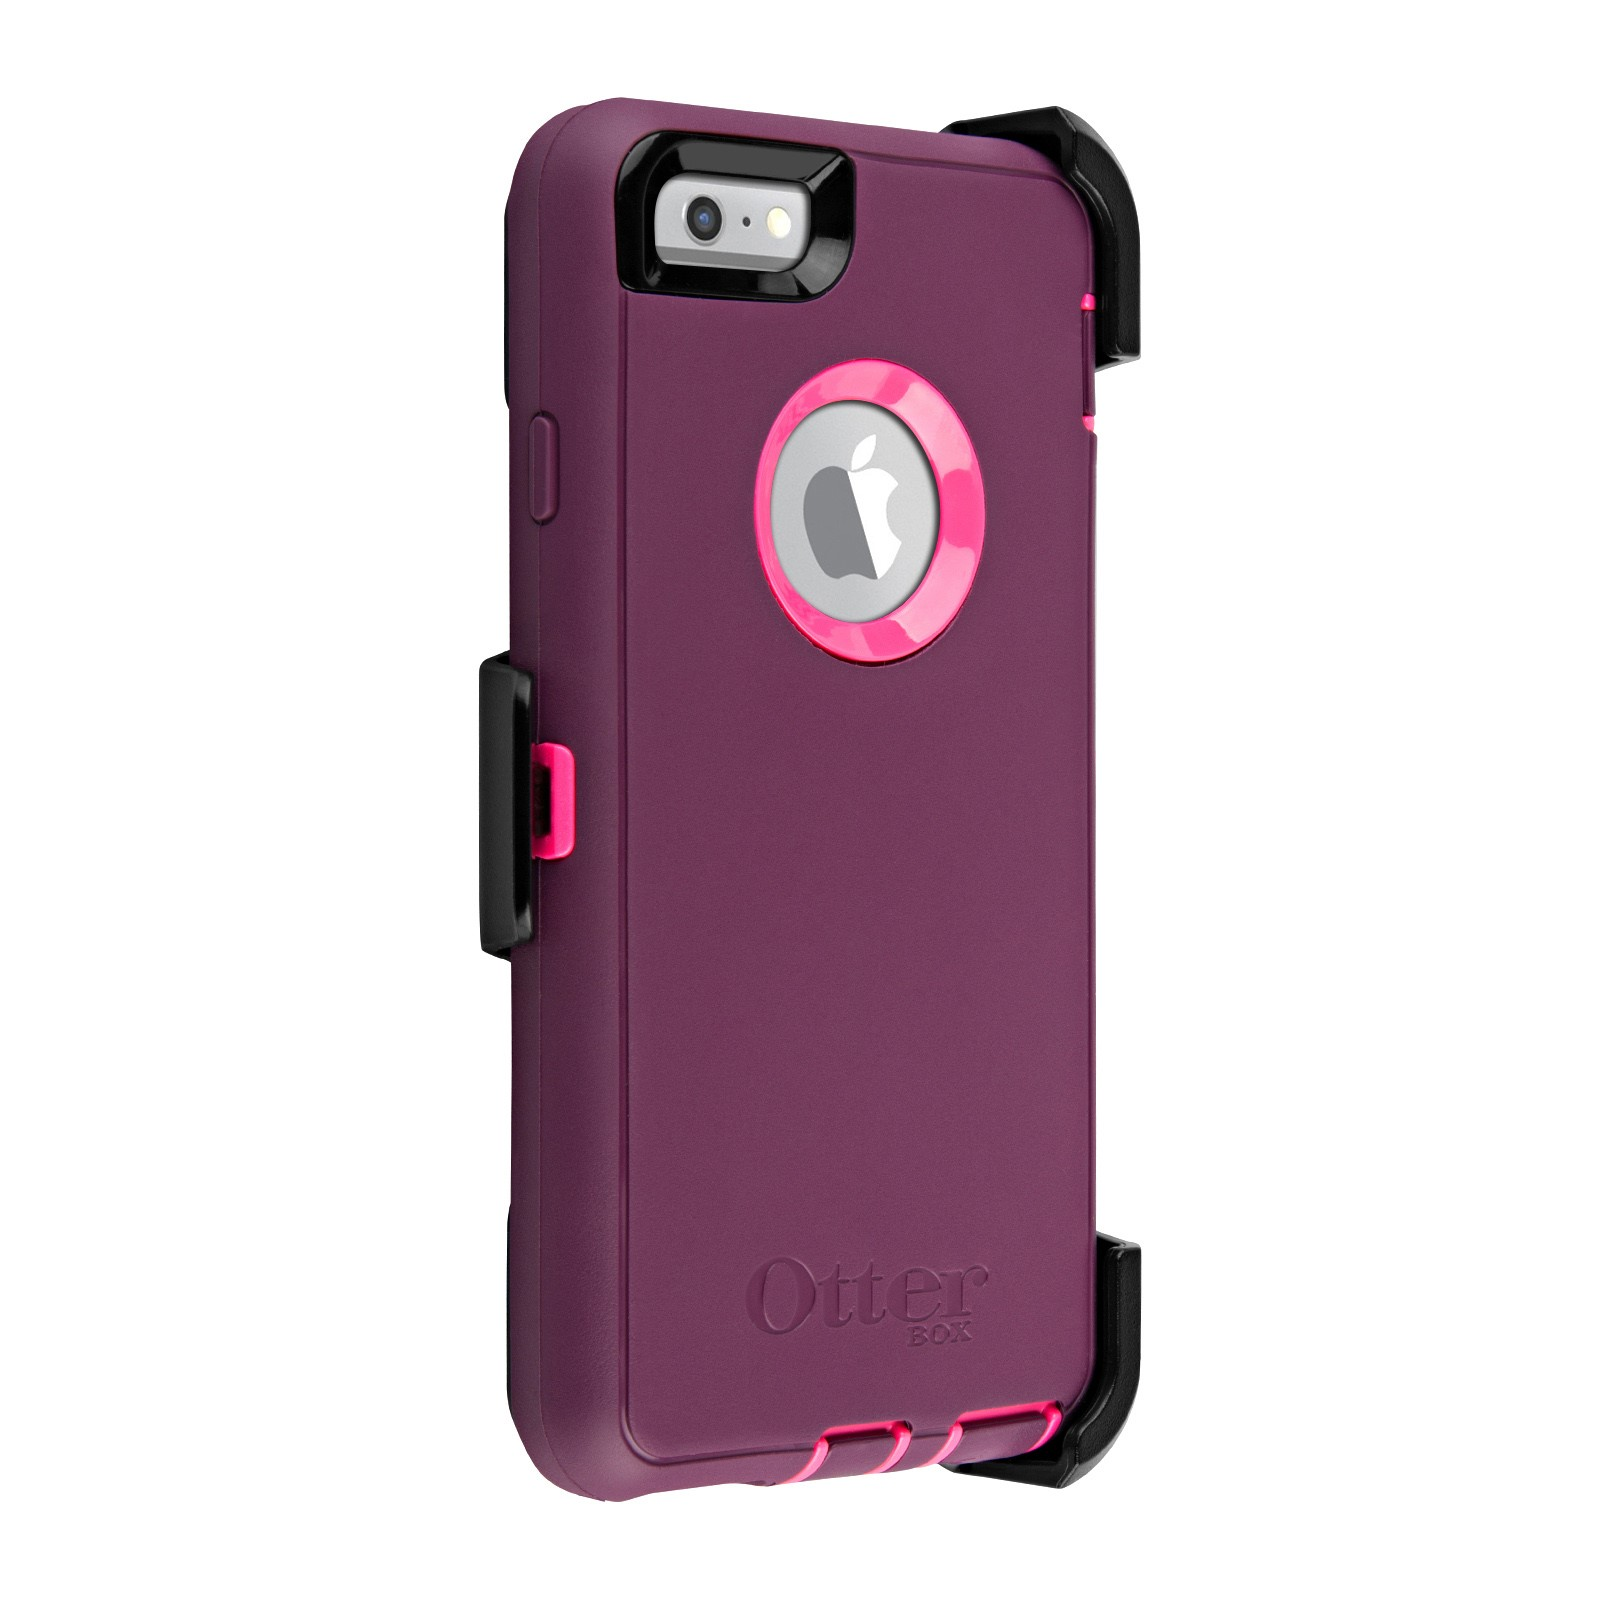 Otterbox Defender Rugged Protection Iphone  Plus